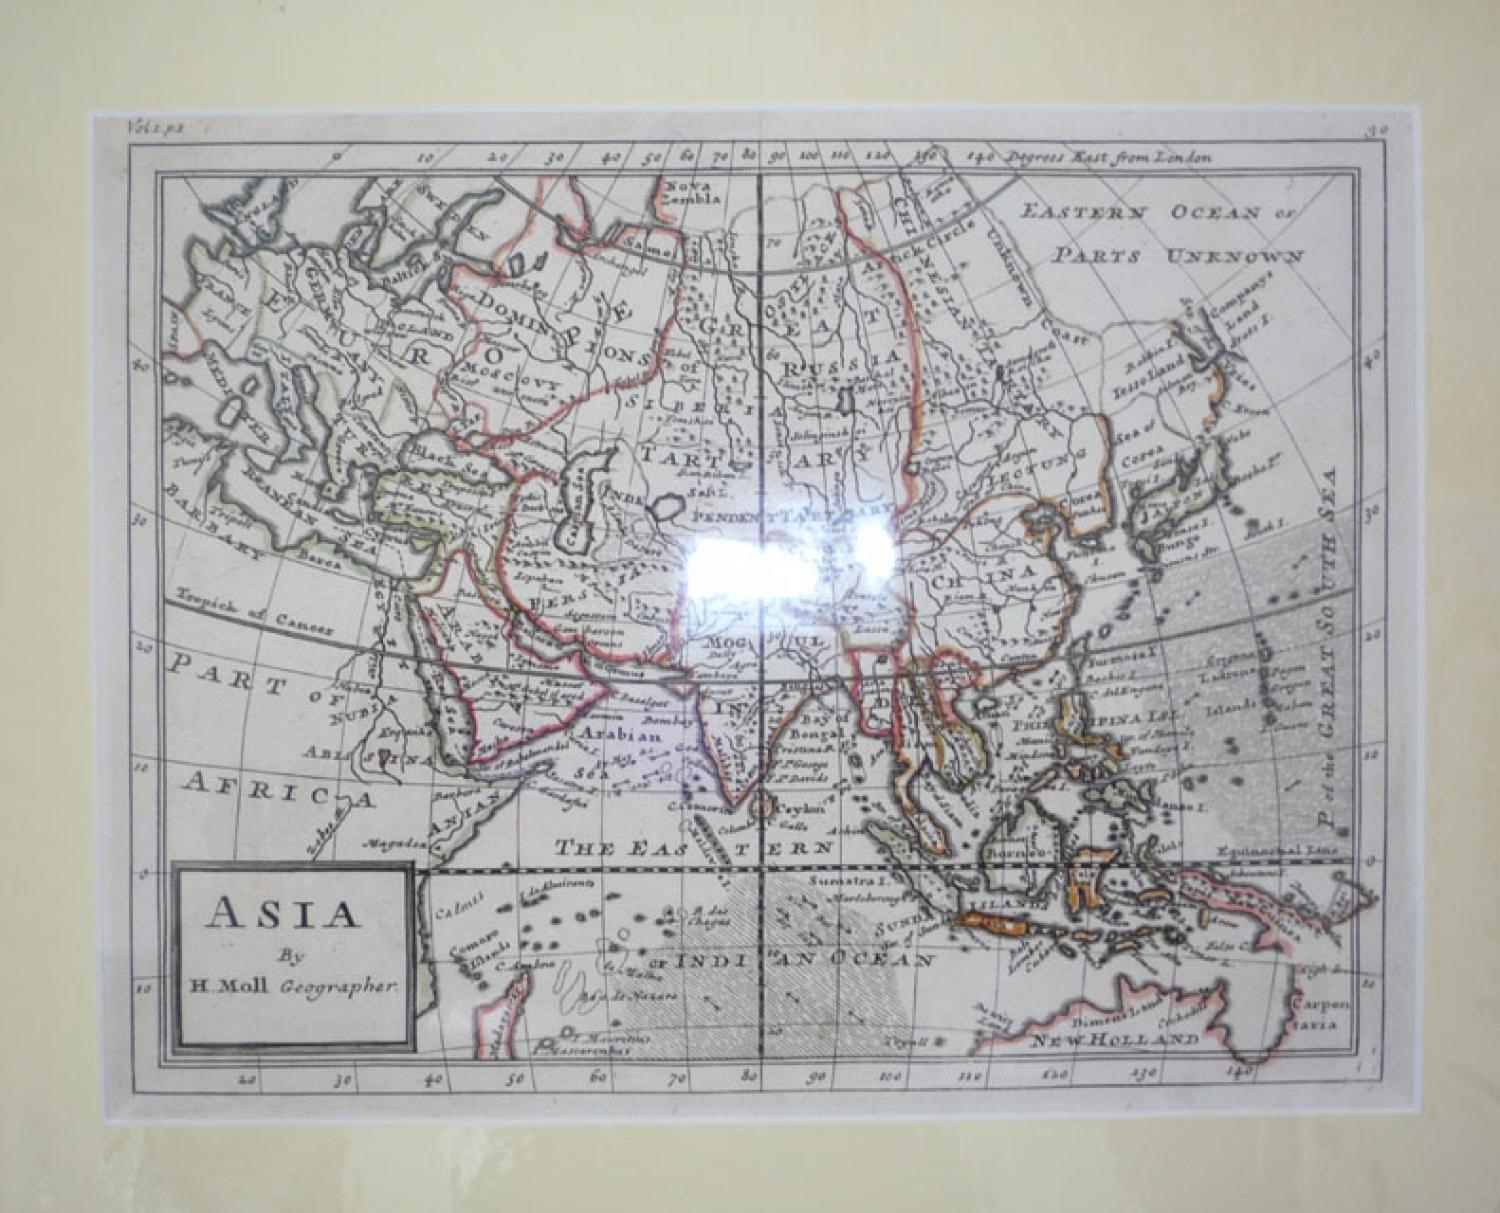 Map Of Upper Asia.Moll Asia In Asian Continent